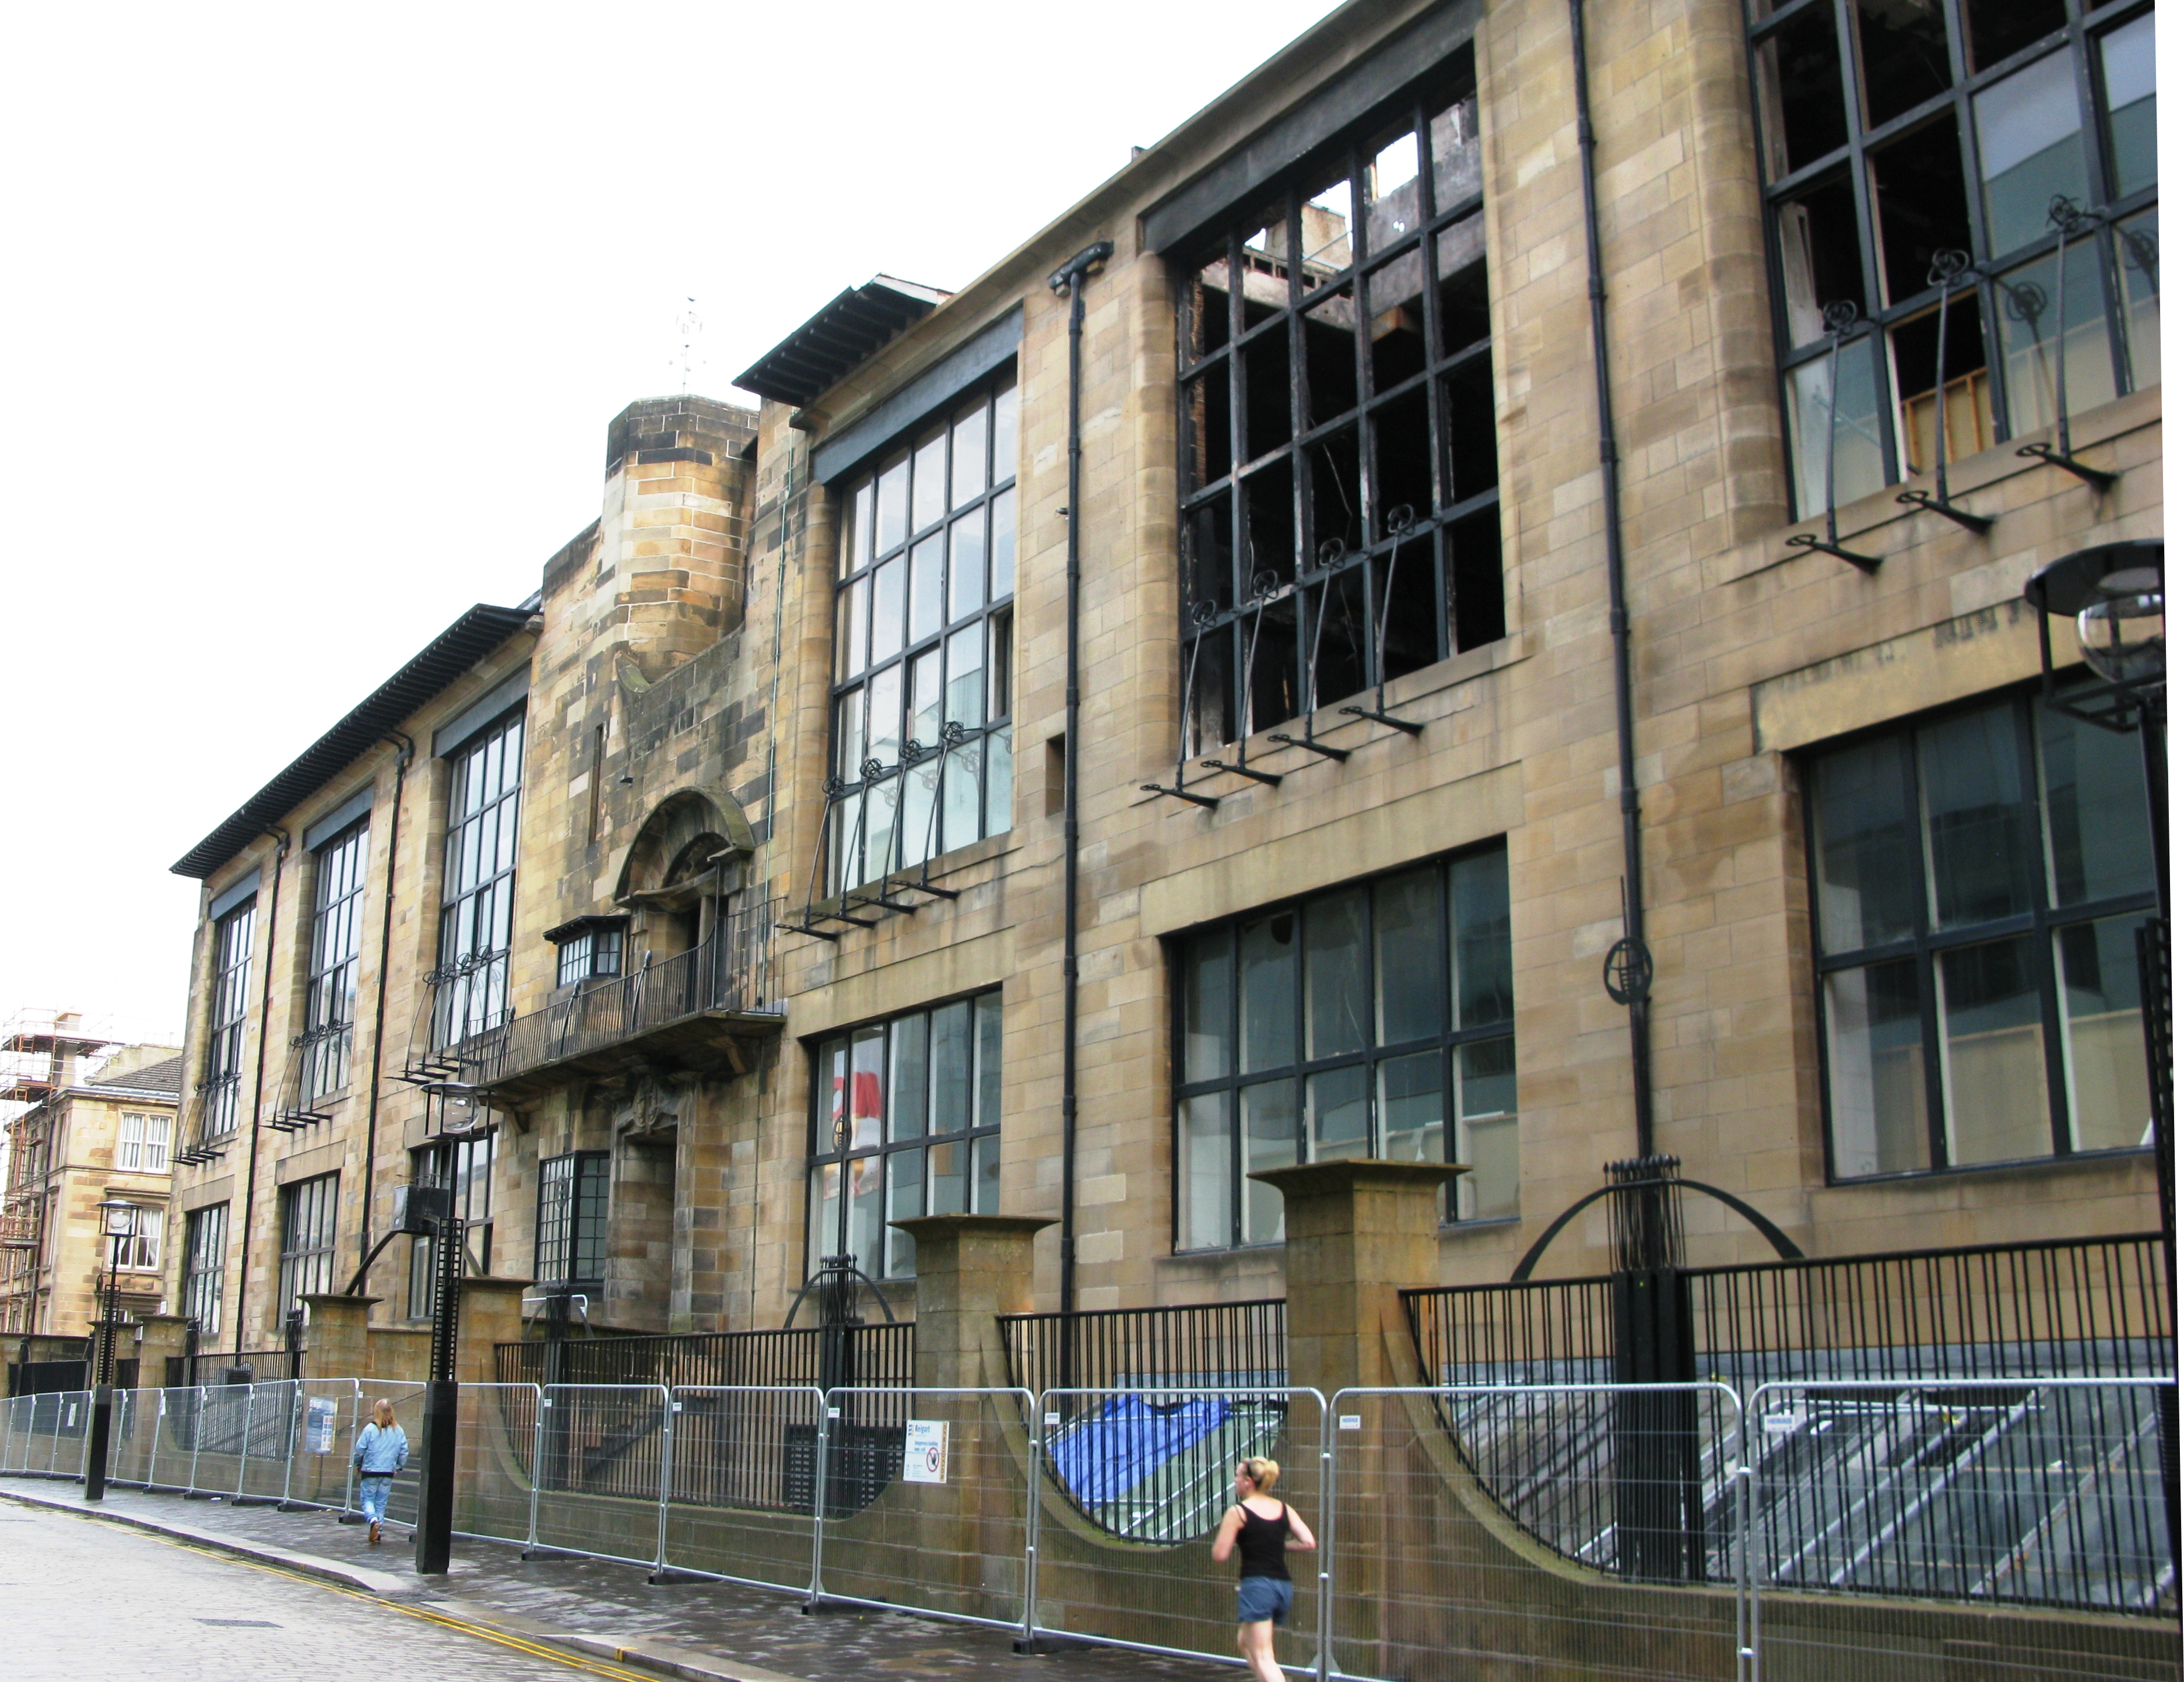 http://upload.wikimedia.org/wikipedia/commons/b/b6/Wfm_glasgow_school_of_art.jpg